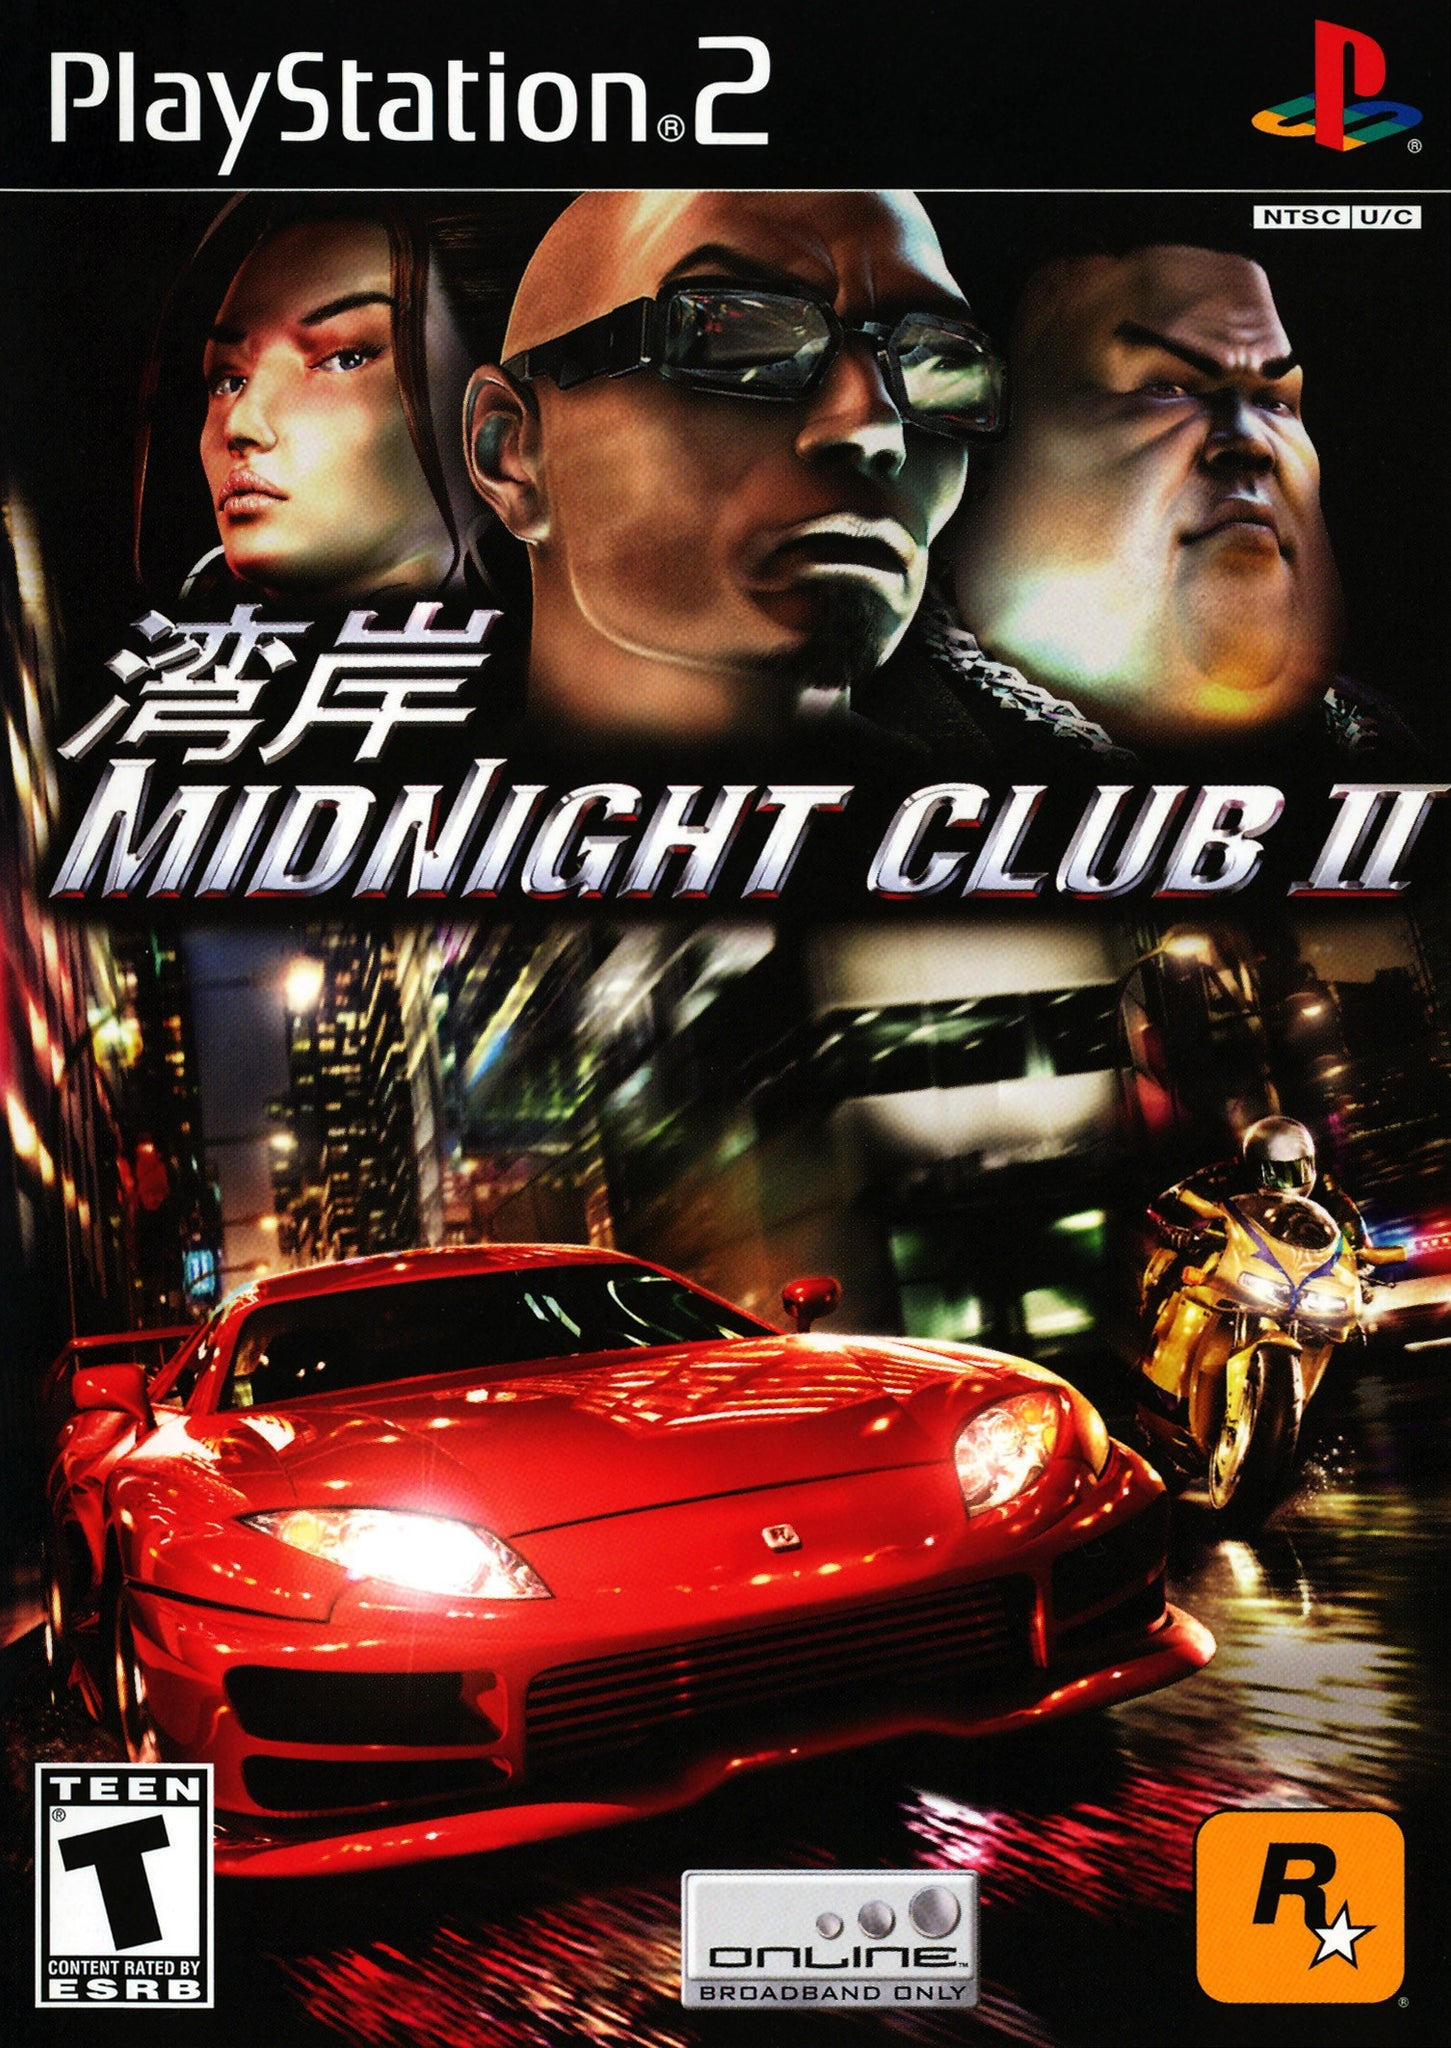 Midnight Club II - PlayStation 2 (PS2) Game